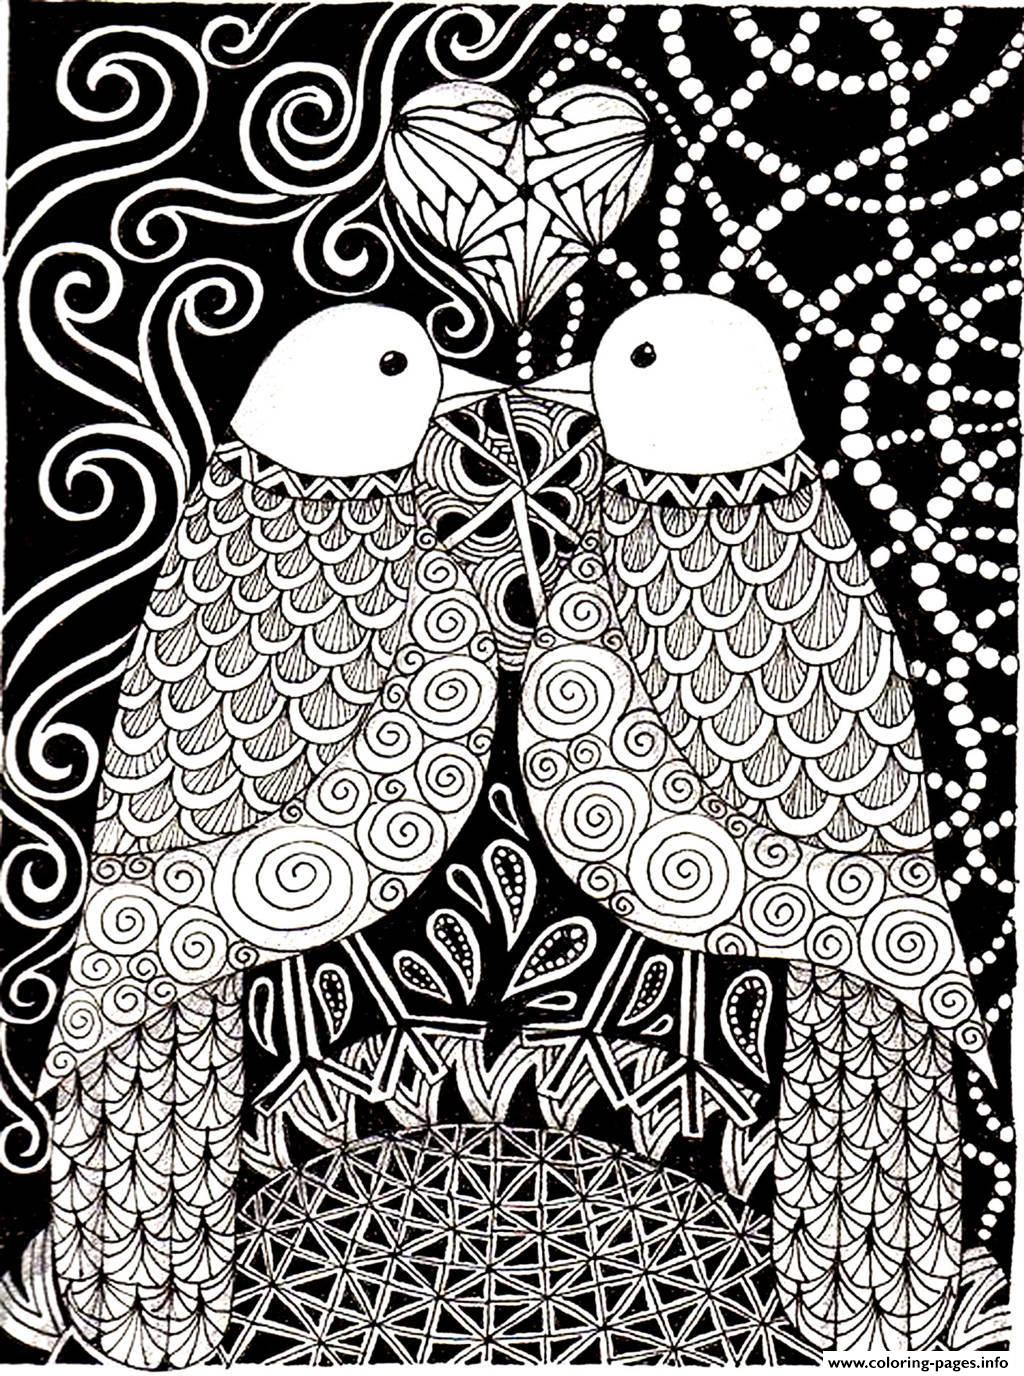 Adult Love Birds coloring pages